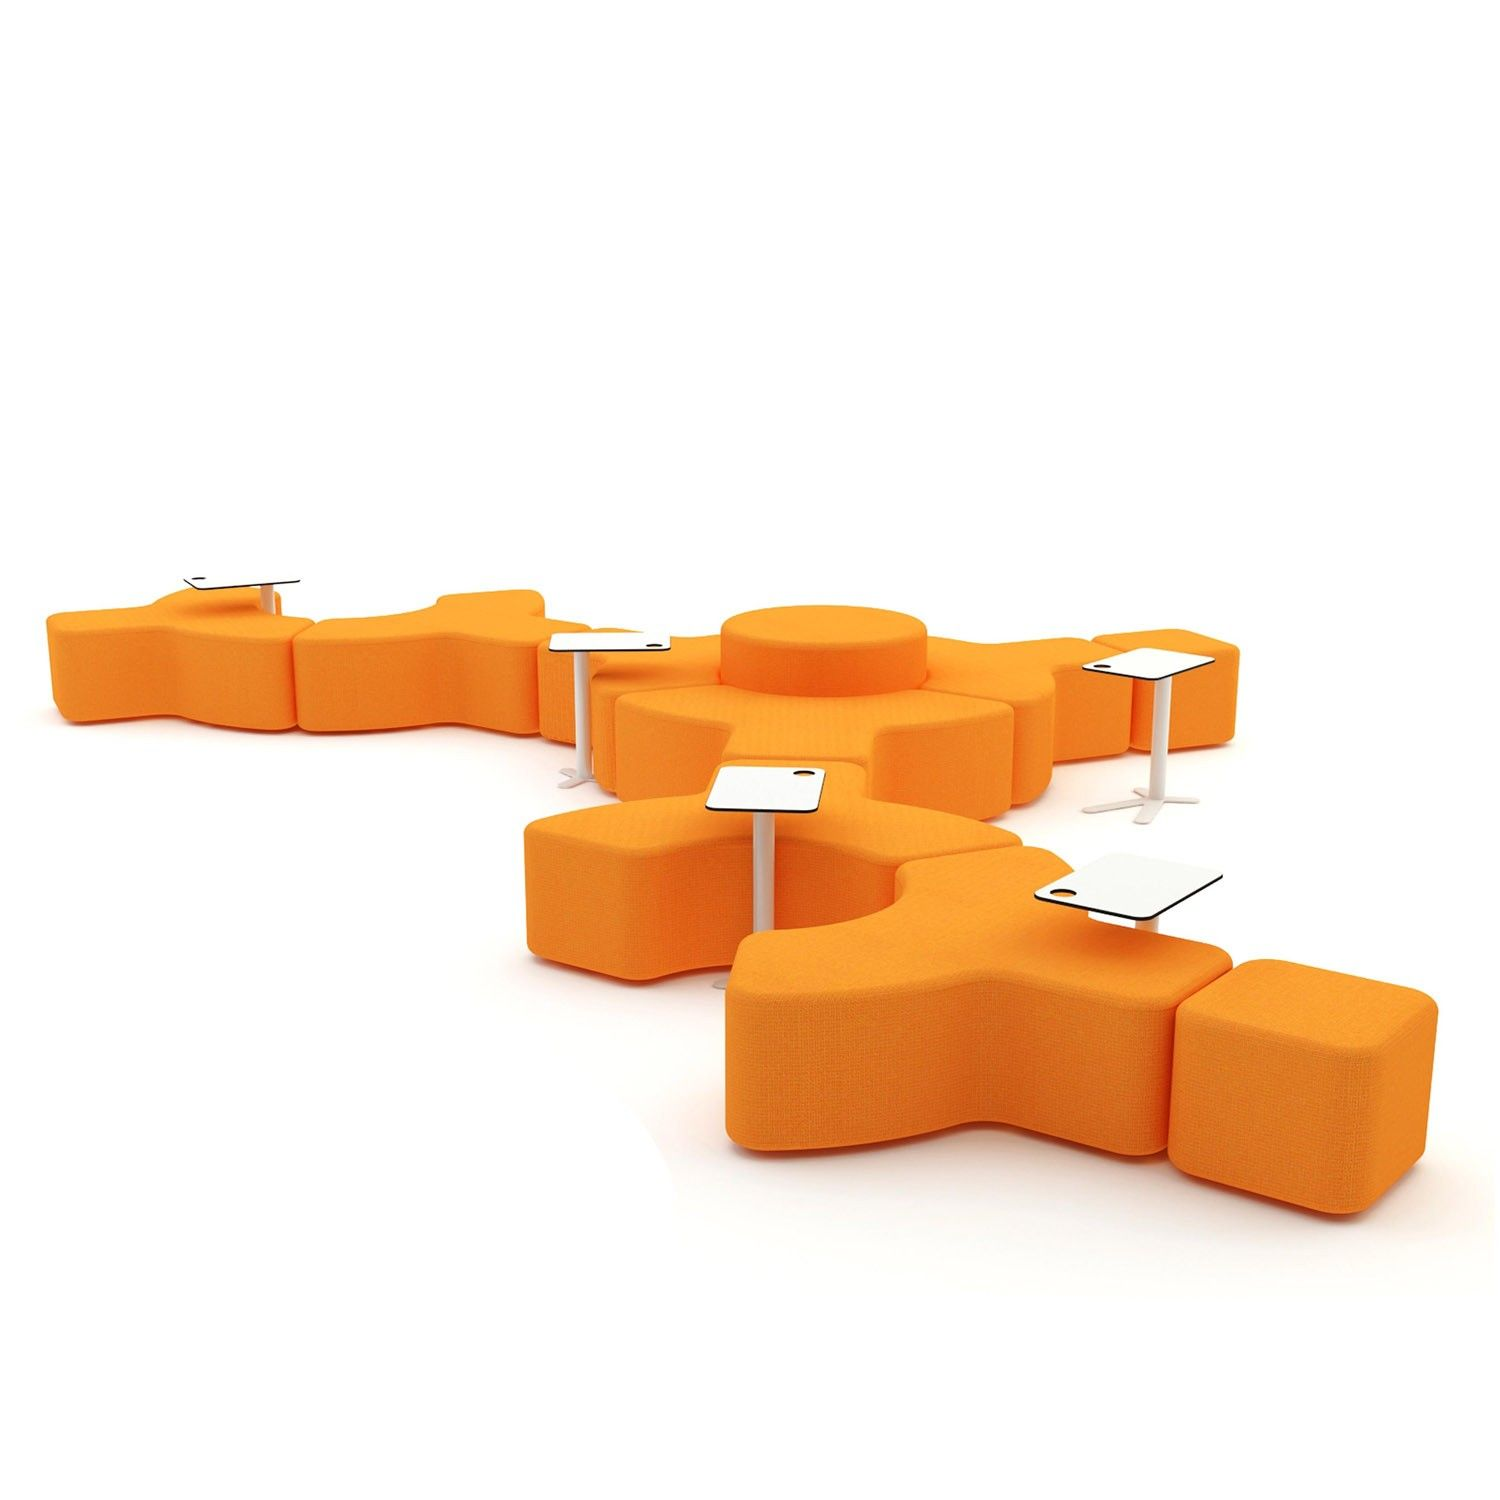 Signs Modular Bench Is A Sectional Soft Seating System For